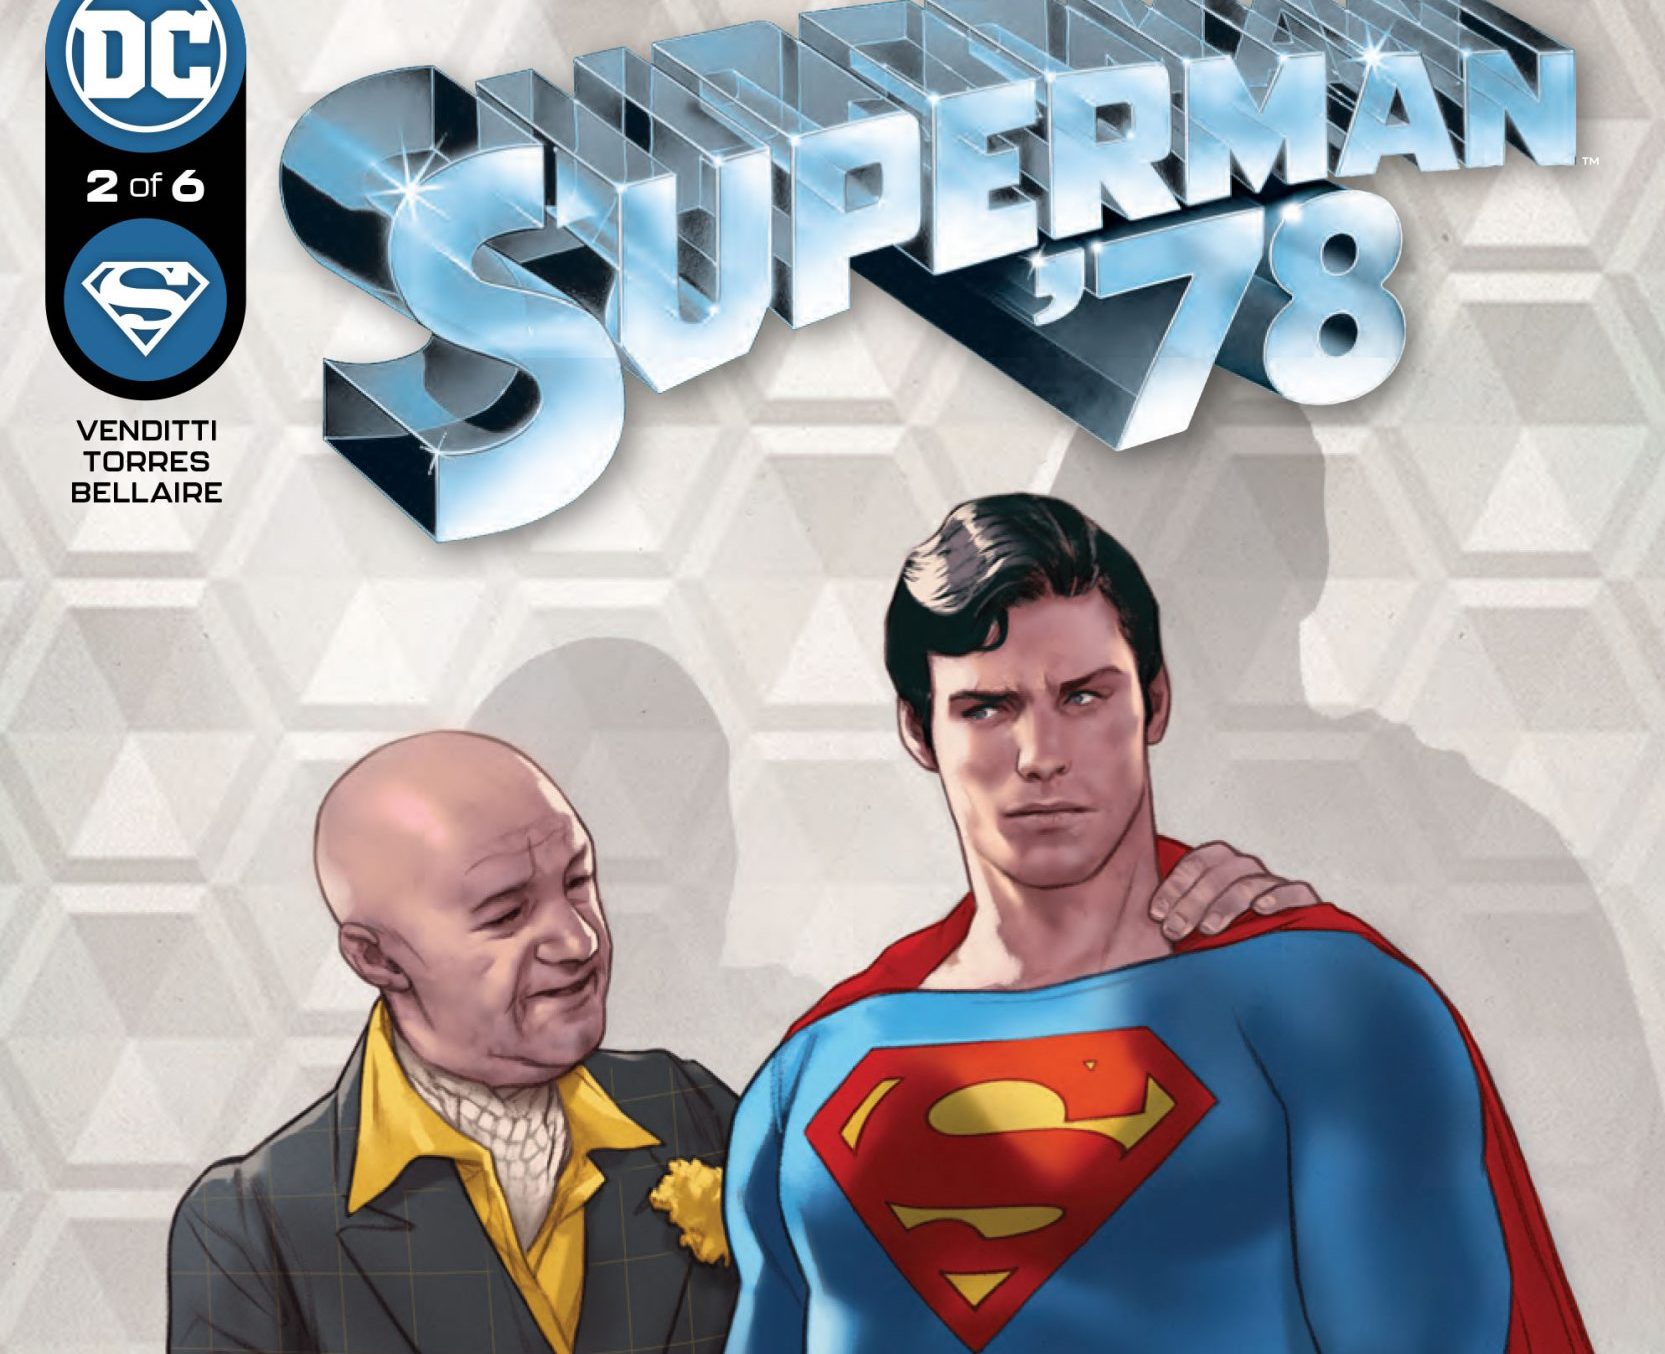 'Superman '78' #2 will make fans of the film giddy with excitement